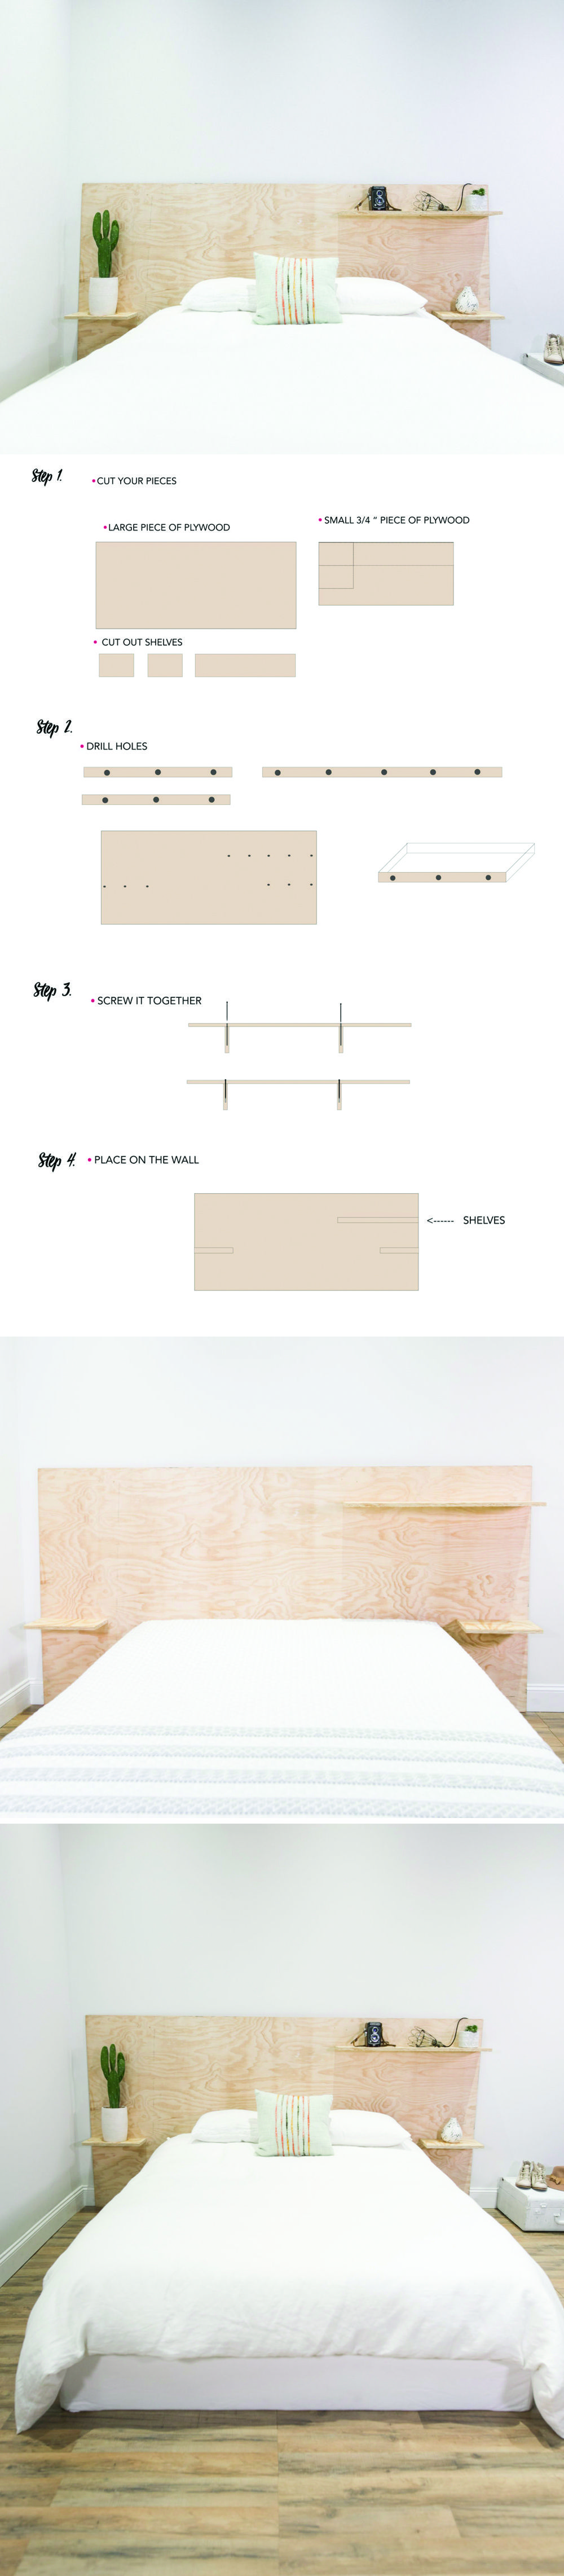 DIY Minimalist Plywood Shelf Headboard | Headboard with ...